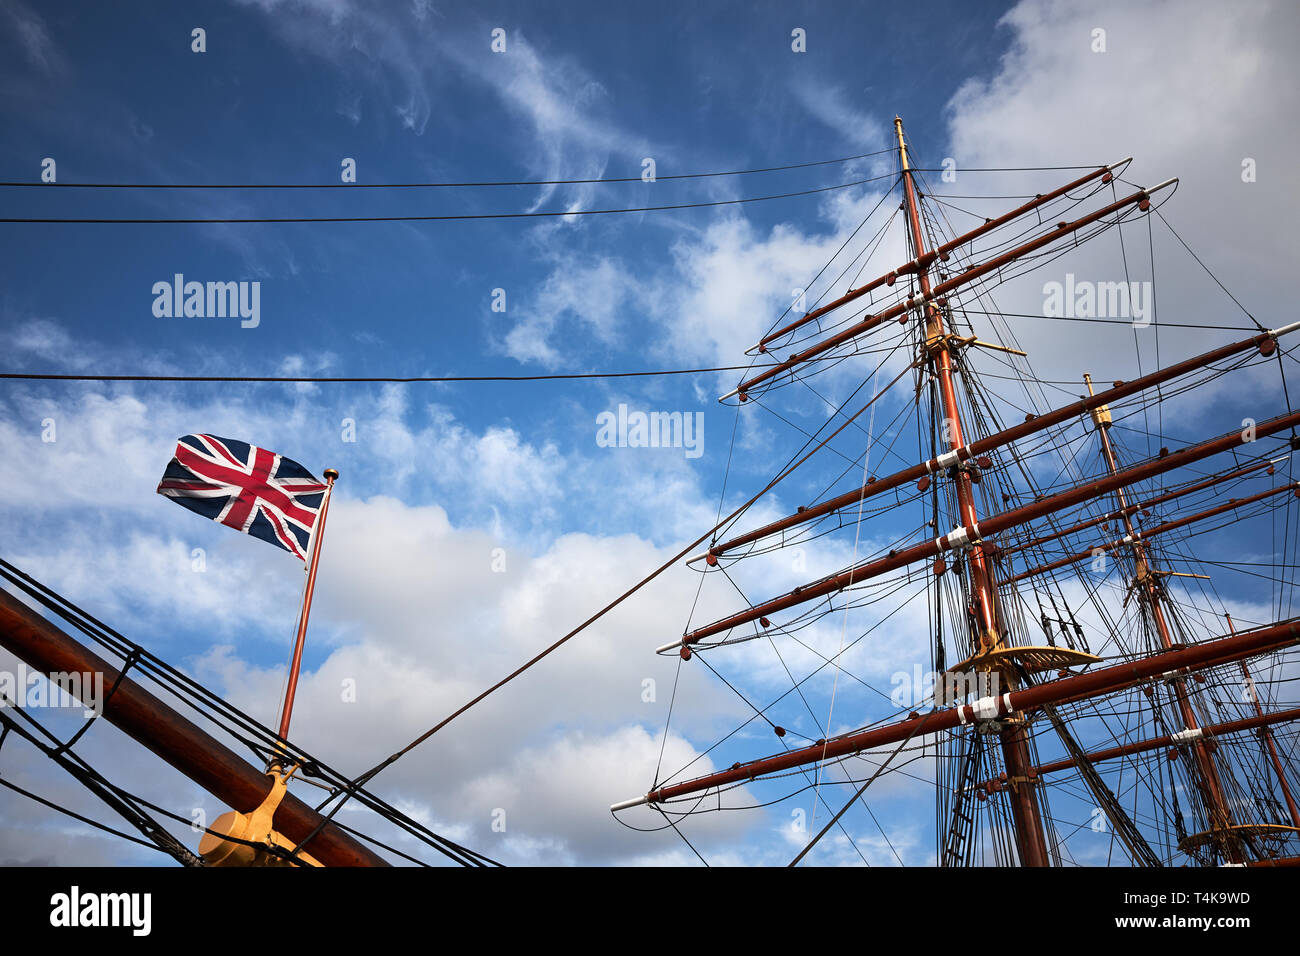 Dundee / Scotland - April 14th 2019: The exterior of the RRS Discovery, the last wooden three mast steamship built in the UK - Stock Image